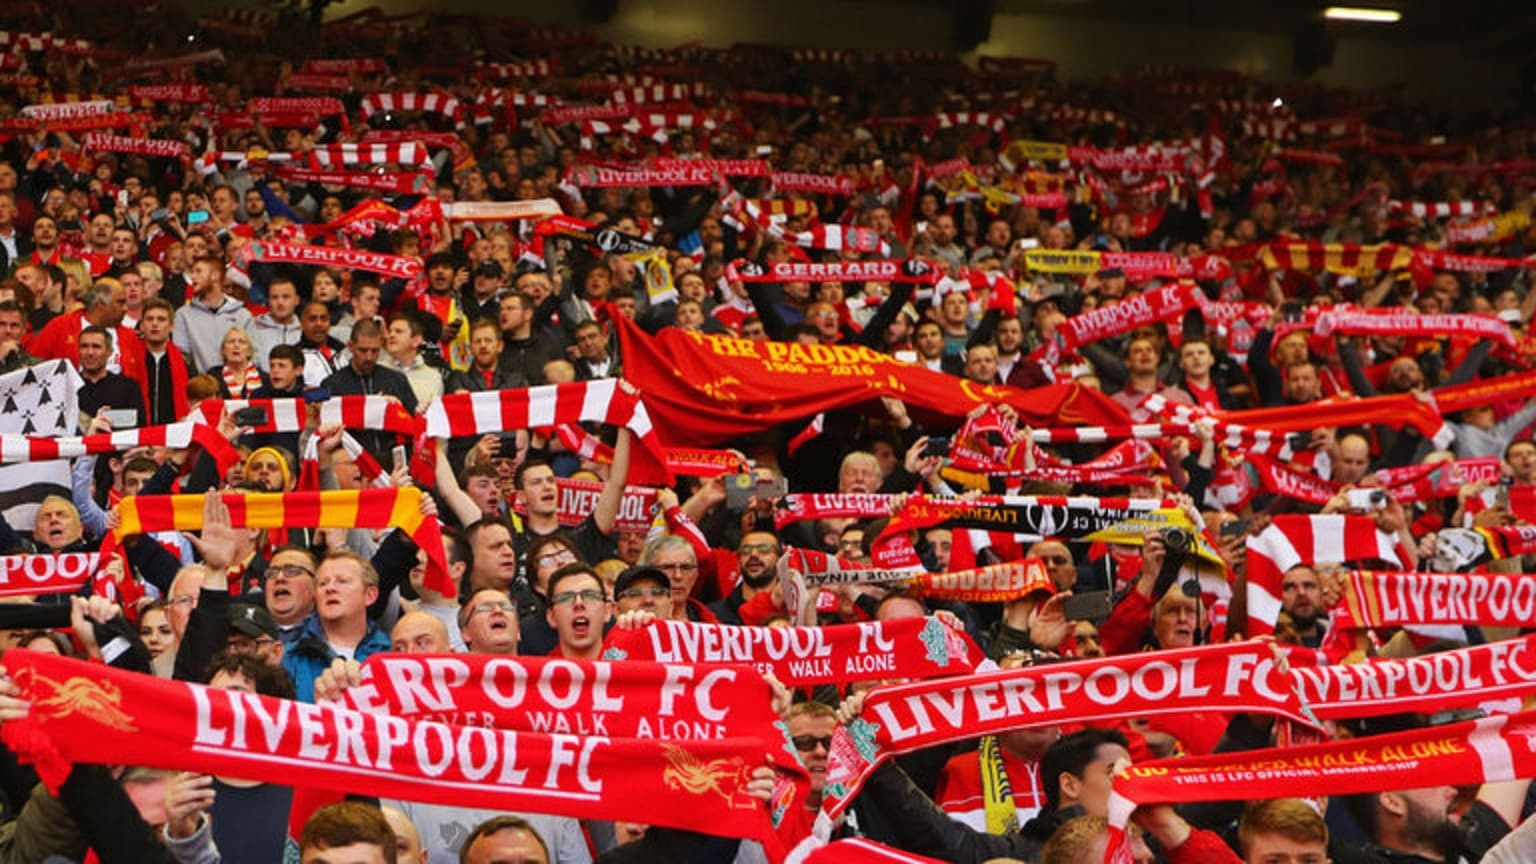 Liverpool FC: The Greatest Premiership Game Ever